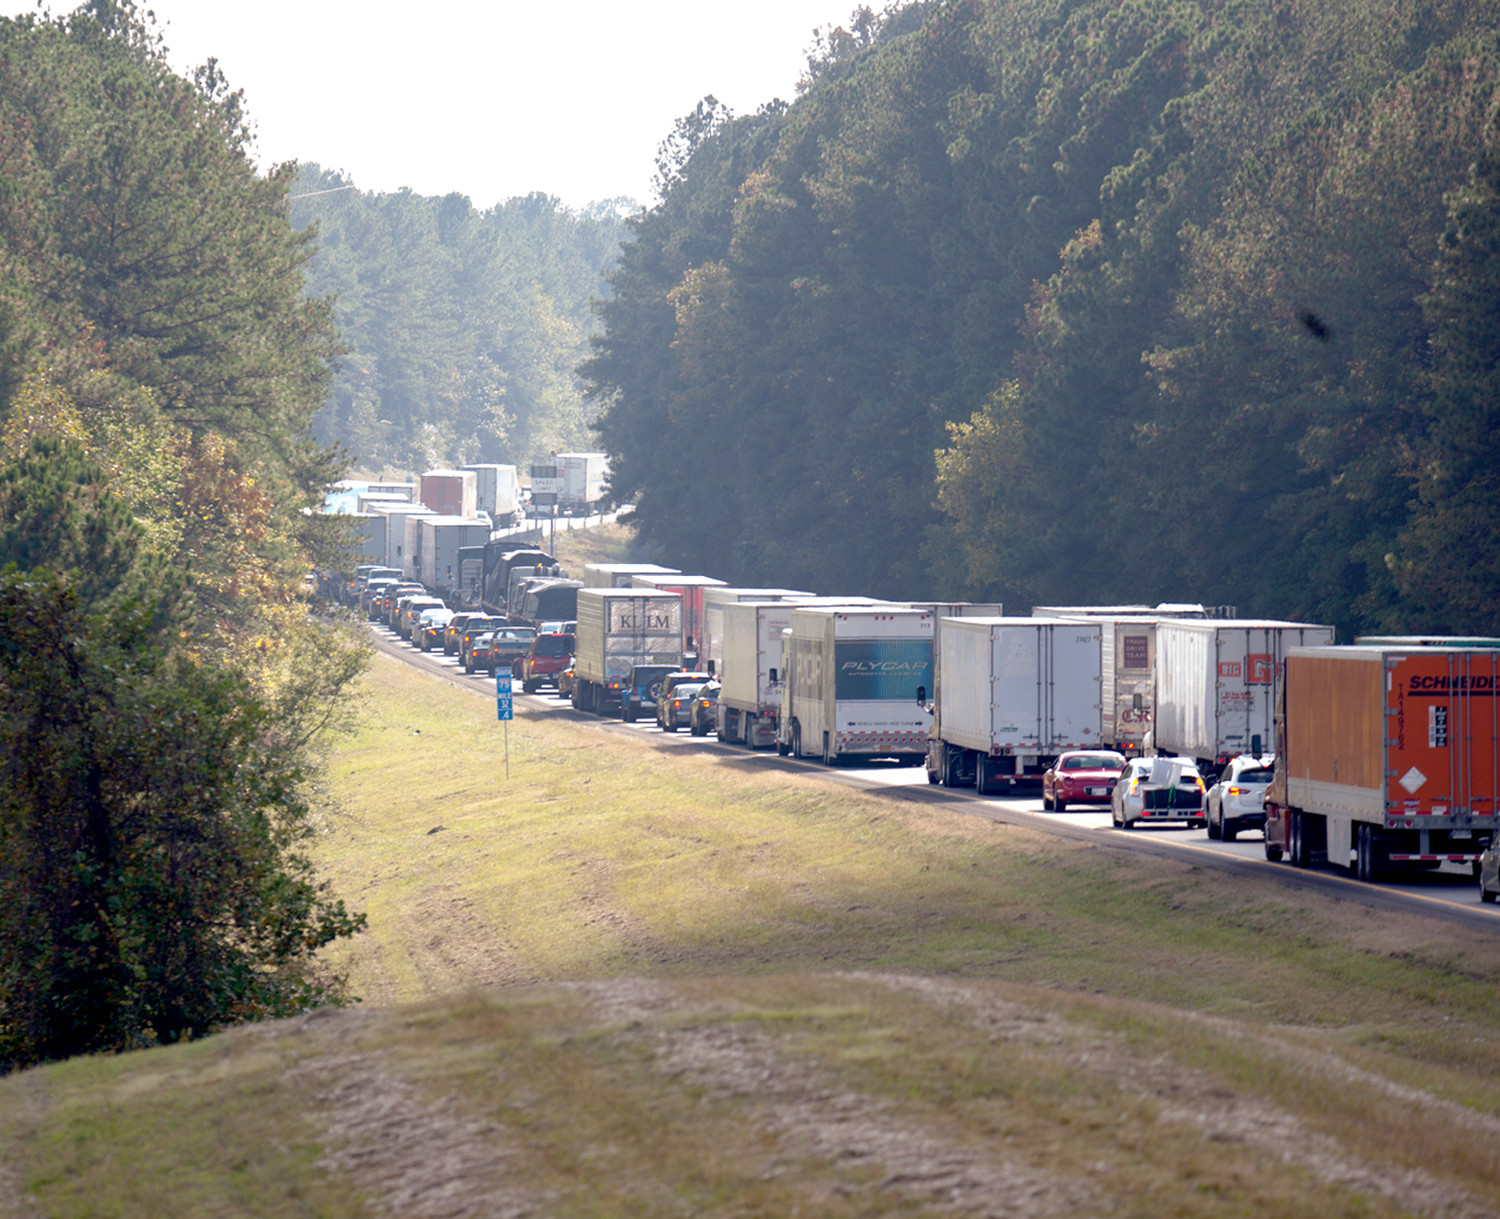 A SOUTH CAROLINA WOMAN was killed in a traffic accident on Interstate 75 on Friday, near mile marker 28,  resulting in the closure of one lane of traffic and autos lined up well beyond Exit 33 in Charleston.